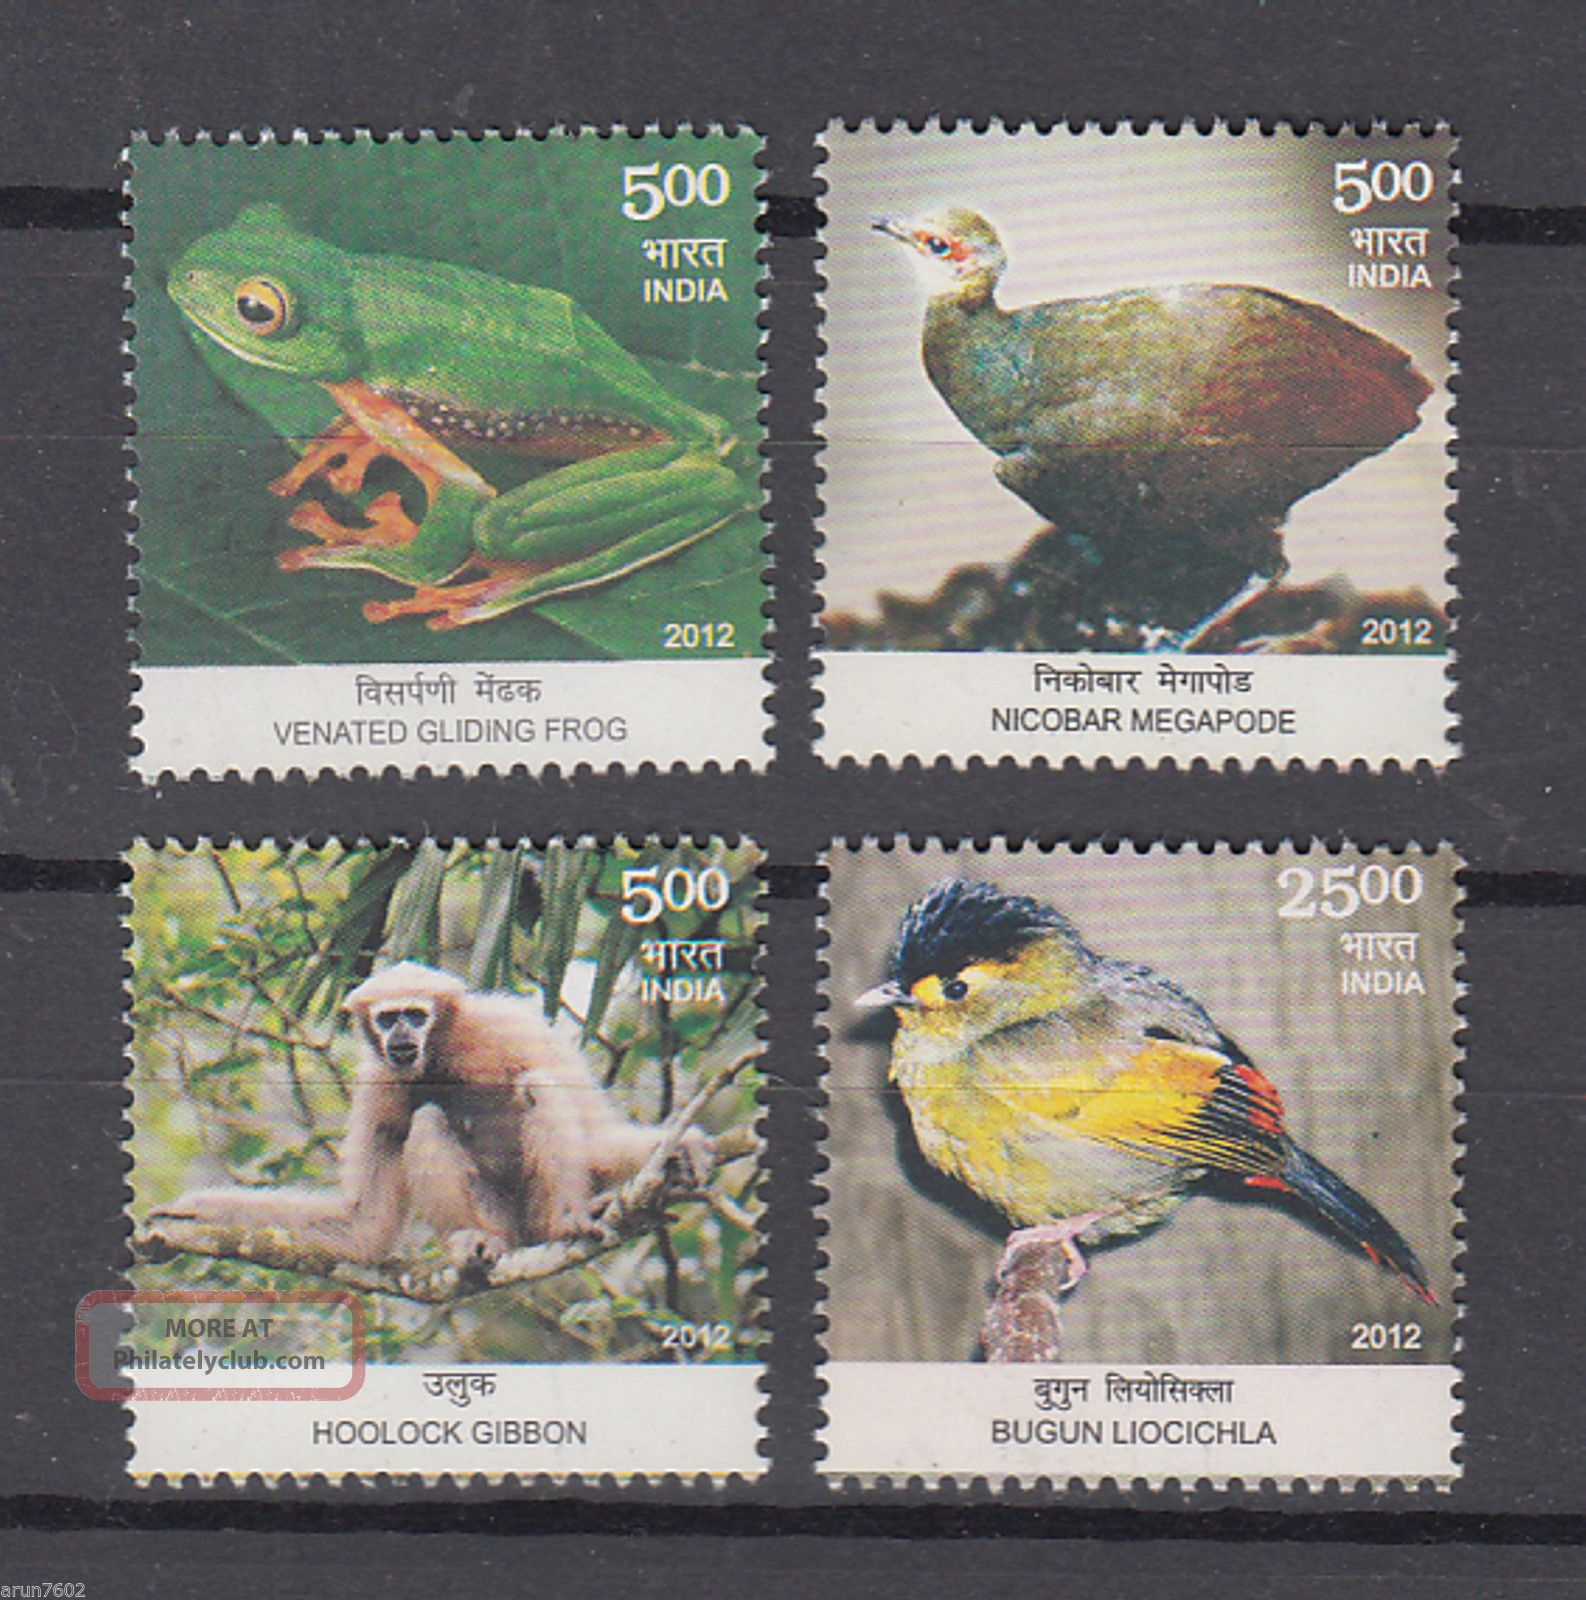 India 2012 Biodiversity 4v Gliding Frog Hoolock Gibbon Birds 62883 Animal Kingdom photo